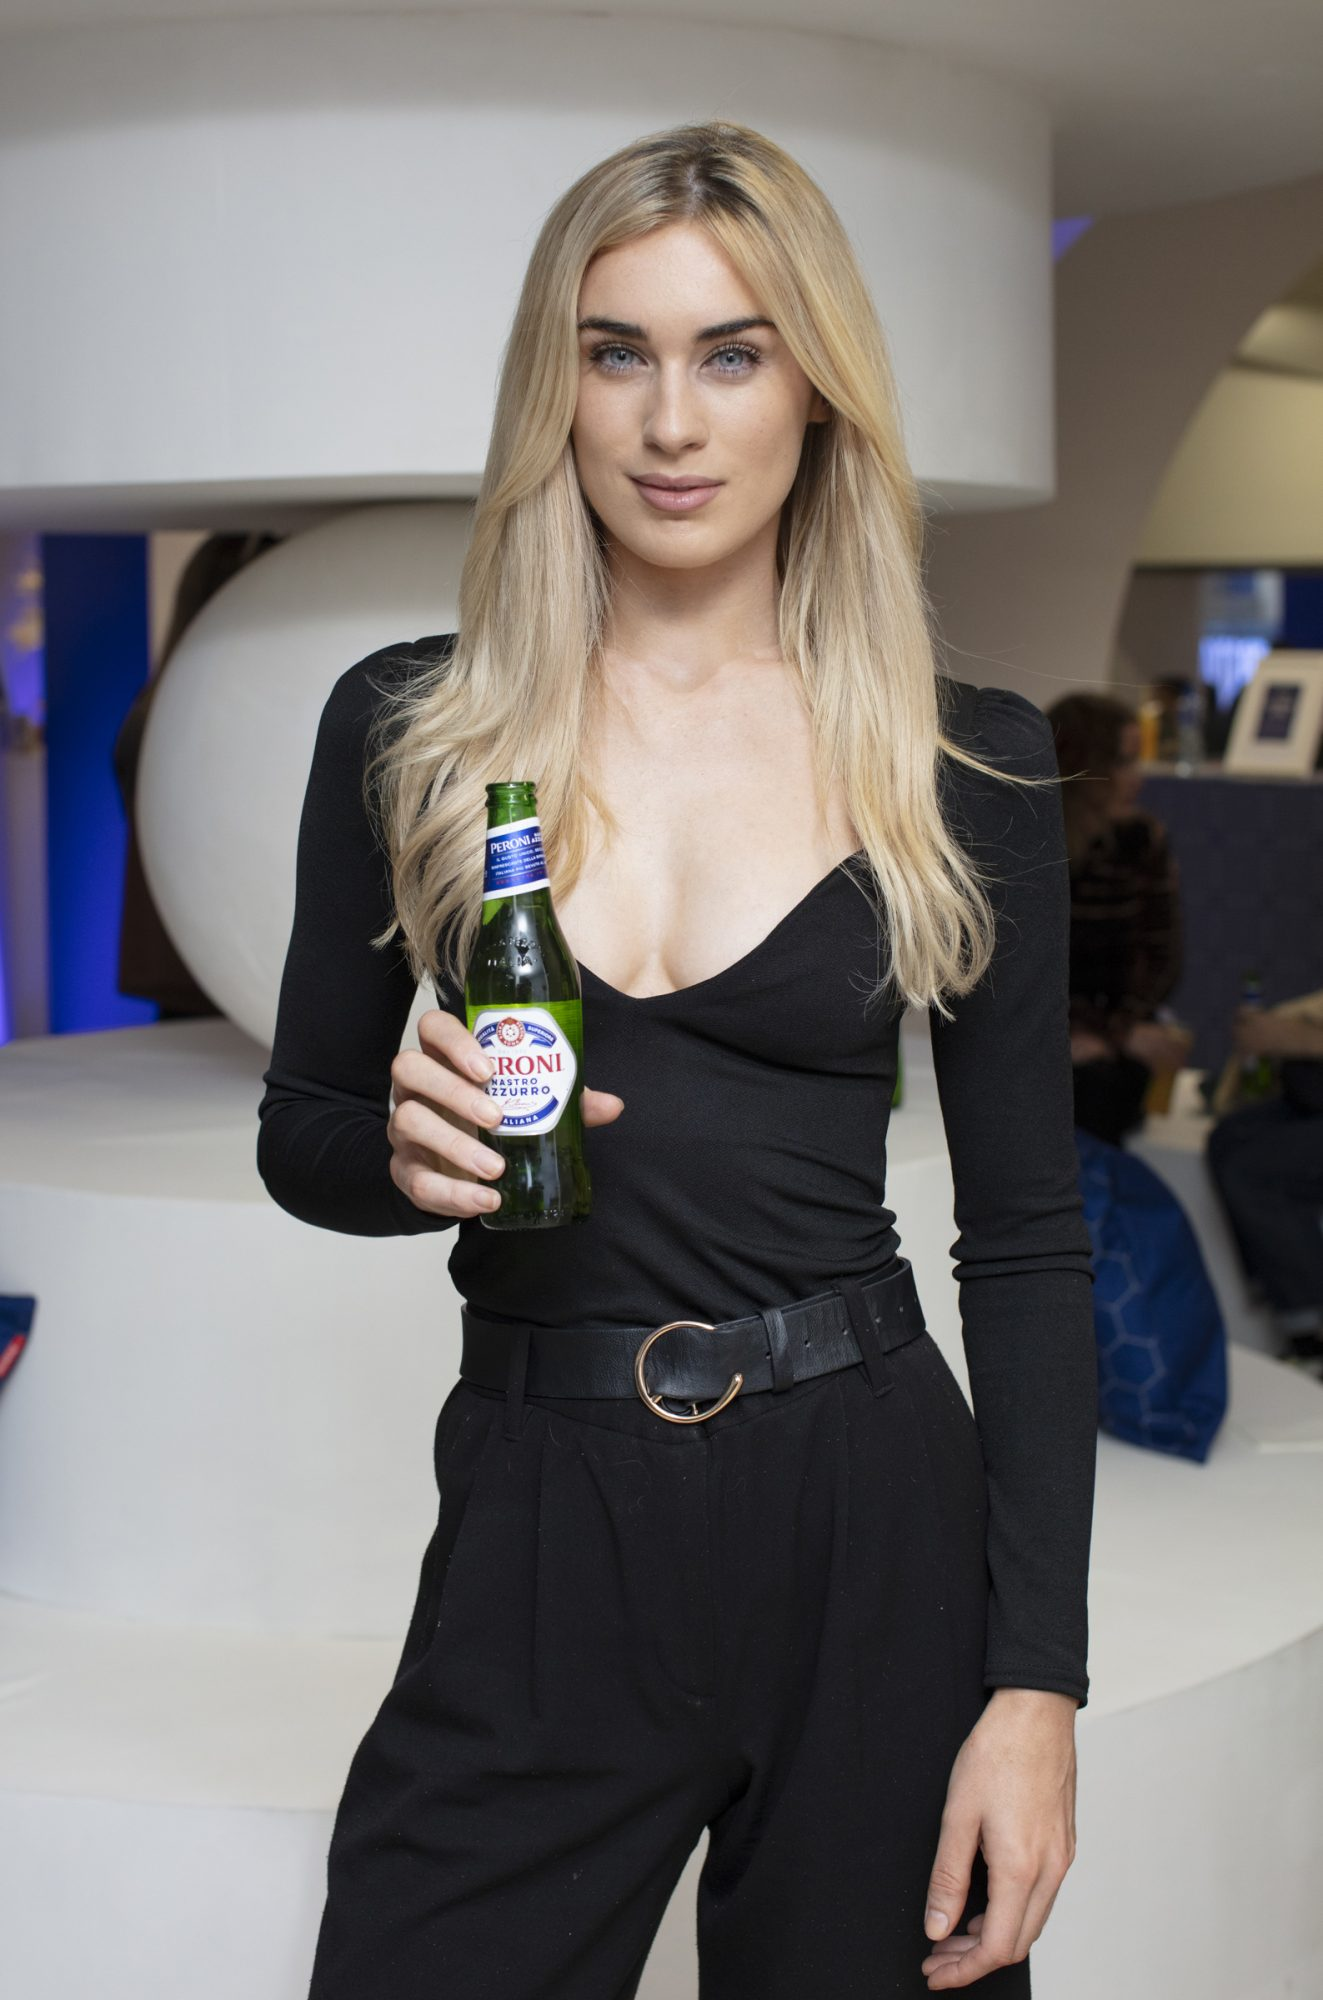 Aimee Boyle pictured at the launch of The House of Peroni, which is open at the RHA in Dublin until Sunday, 1st September 2019. This year's residency sees the RHA transformed into a stylish Peroni inspired experience, filled with food, drink and design. www.thehouseofperoni.com Photo: Anthony Woods.